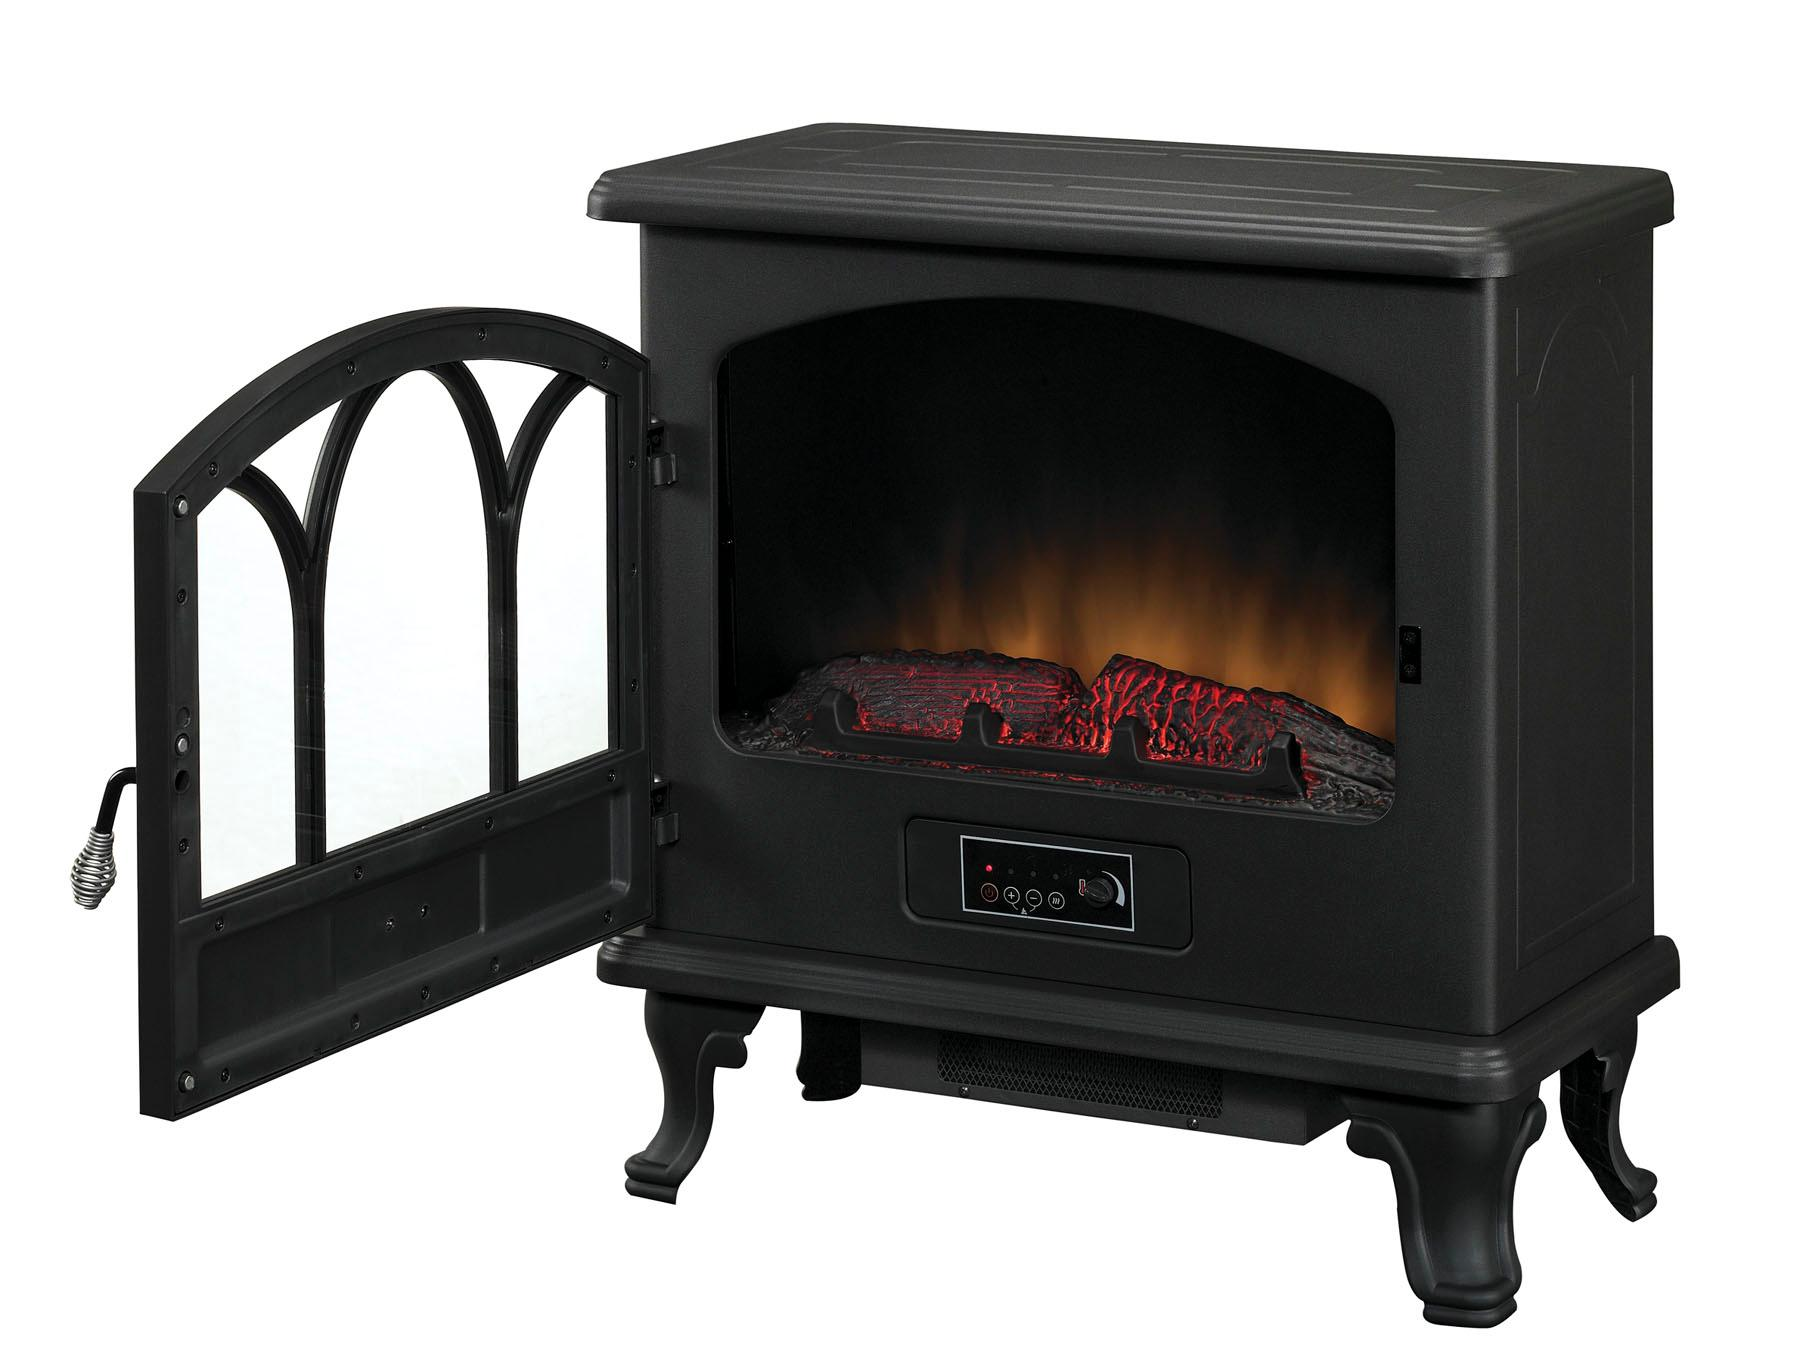 Duraflame Large Stove Heater, Black, DFS-750